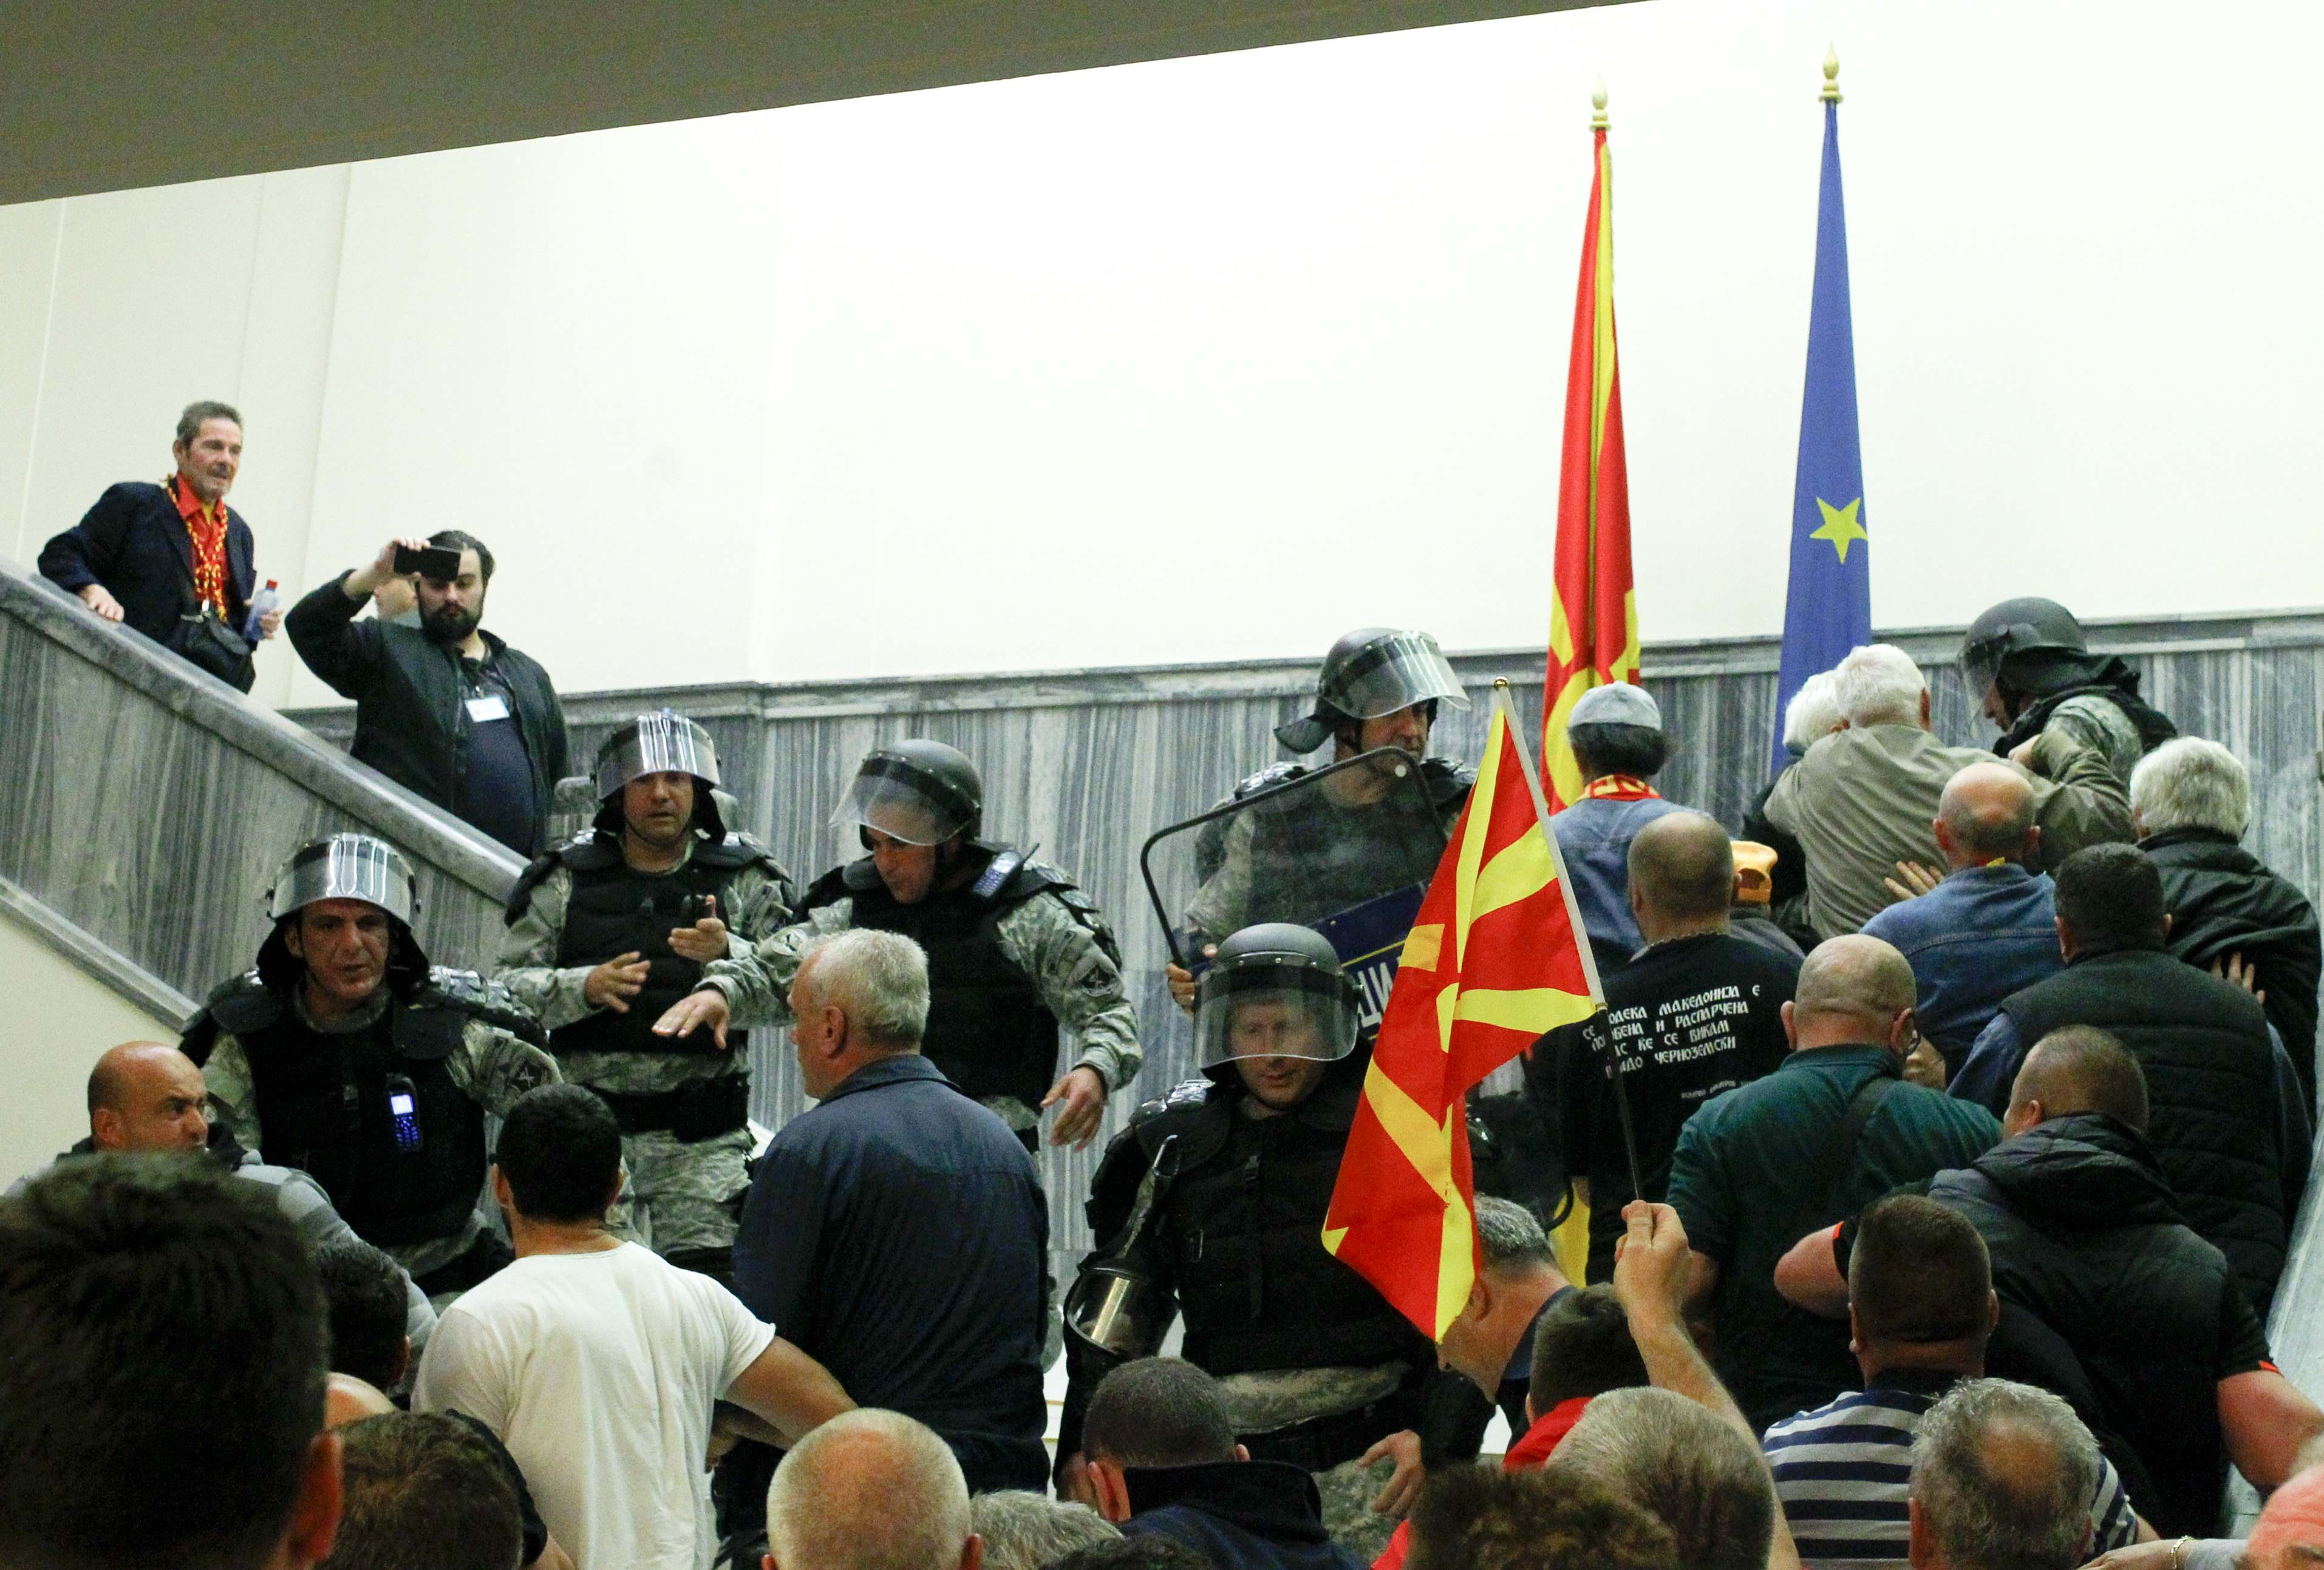 Police try to stop protesters entering Macedonia's parliament after the governing Social Democrats and ethnic Albanian parties voted to elect an Albanian as parliament speaker in Skopje. Macedonia April 27, 2017. Credit: Reuters/Ognen Teofilovski